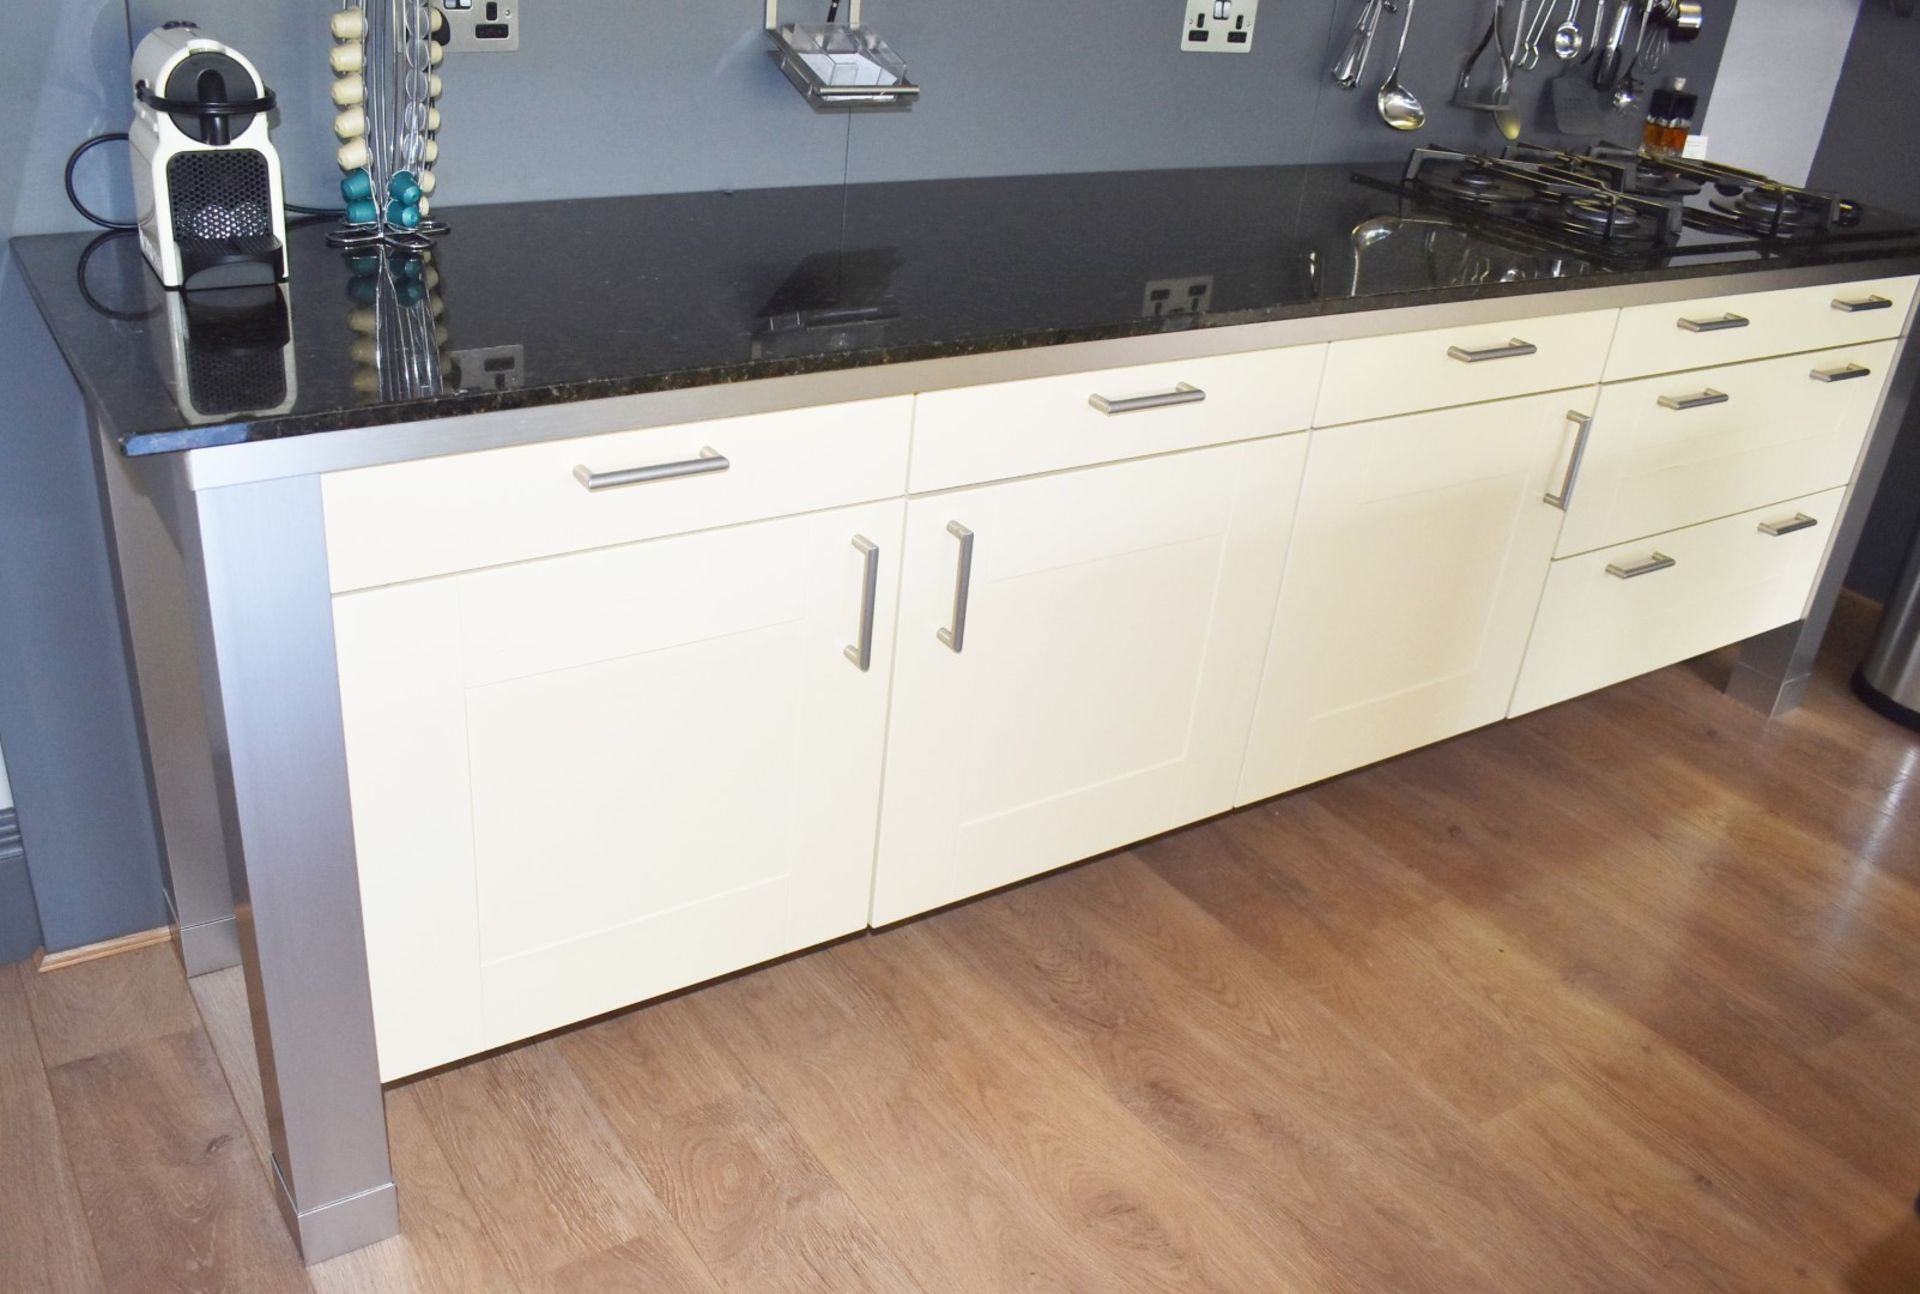 1 x SieMatic Contemporary Fitted Kitchen With Appliances - Features Shaker Style Doors, Central - Image 30 of 96